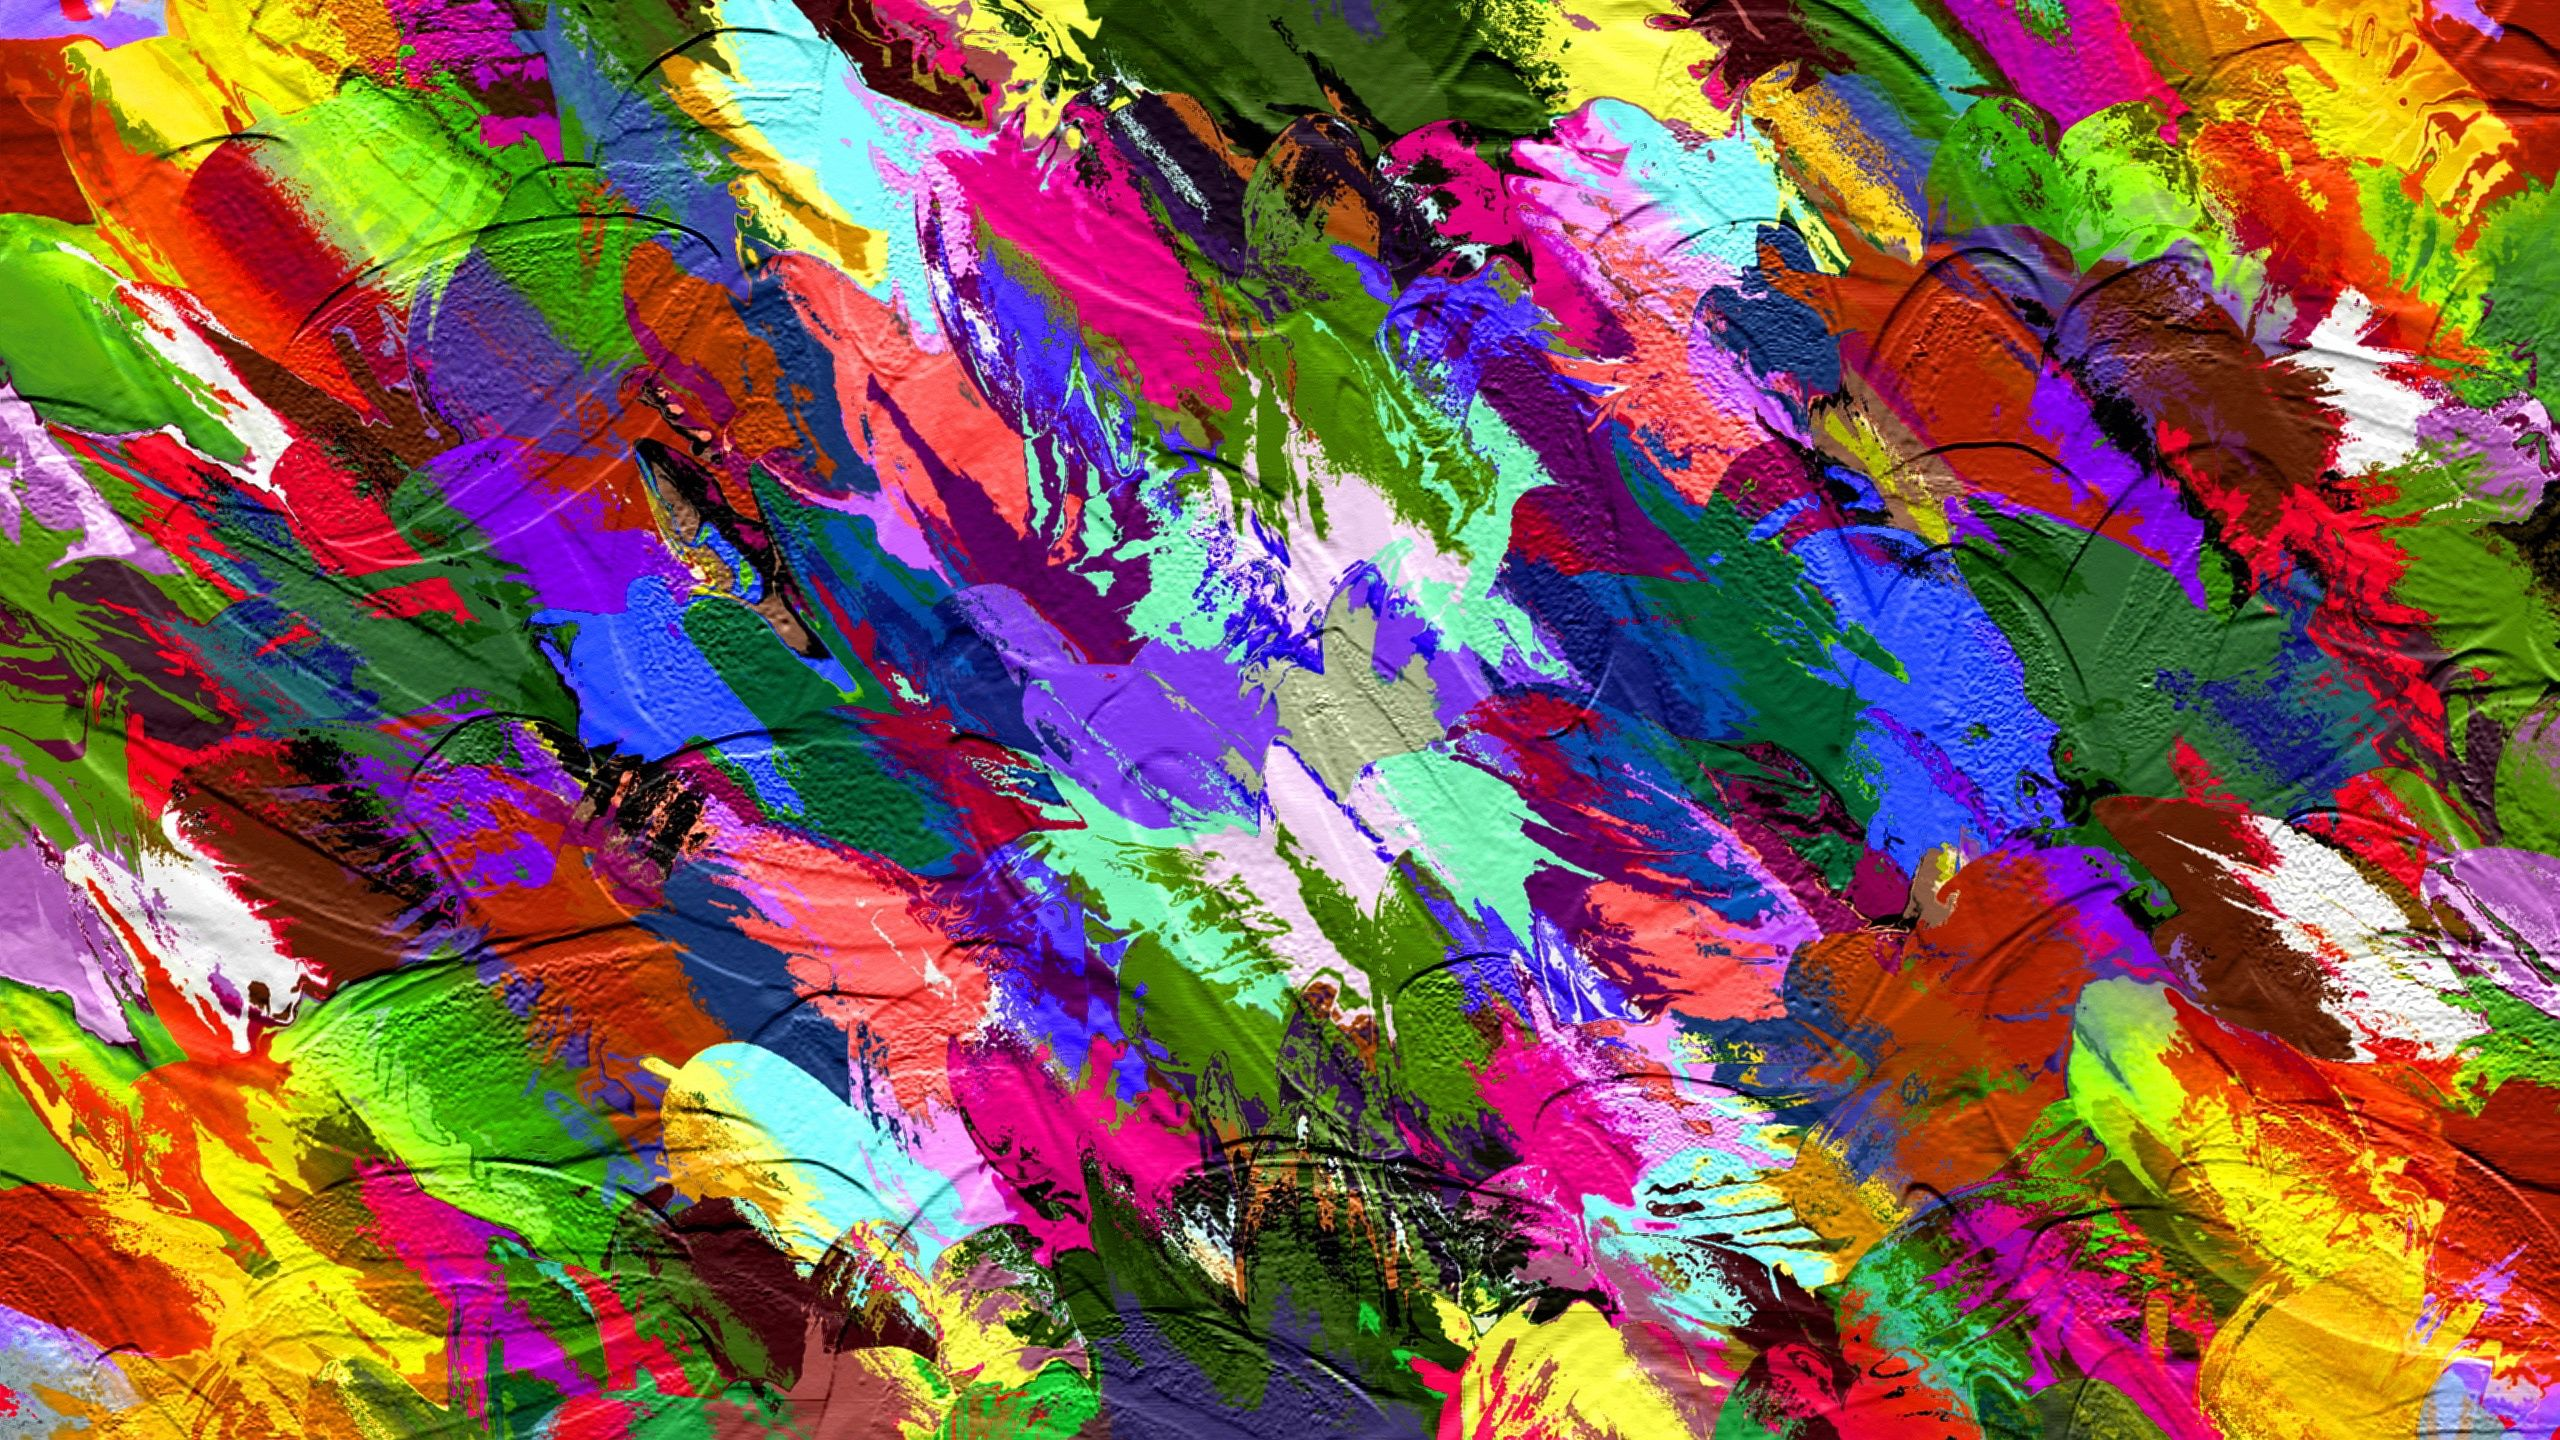 abstract colors wallpaper in 2560x1440 | ideas majo | pinterest